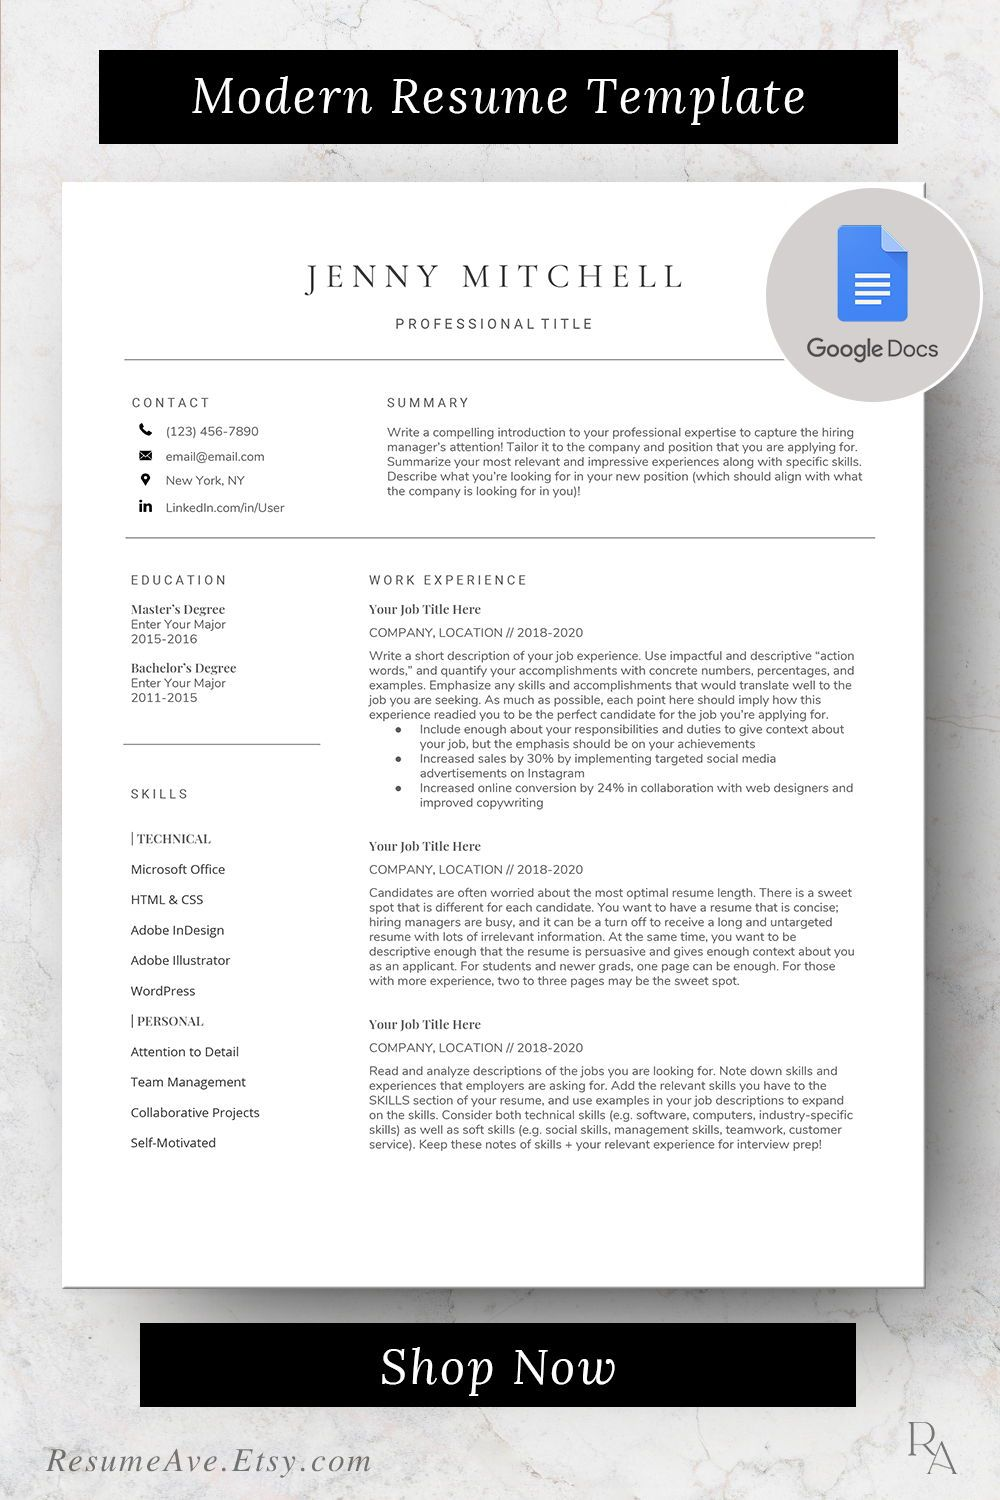 Google docs resume template with cover letter cv design